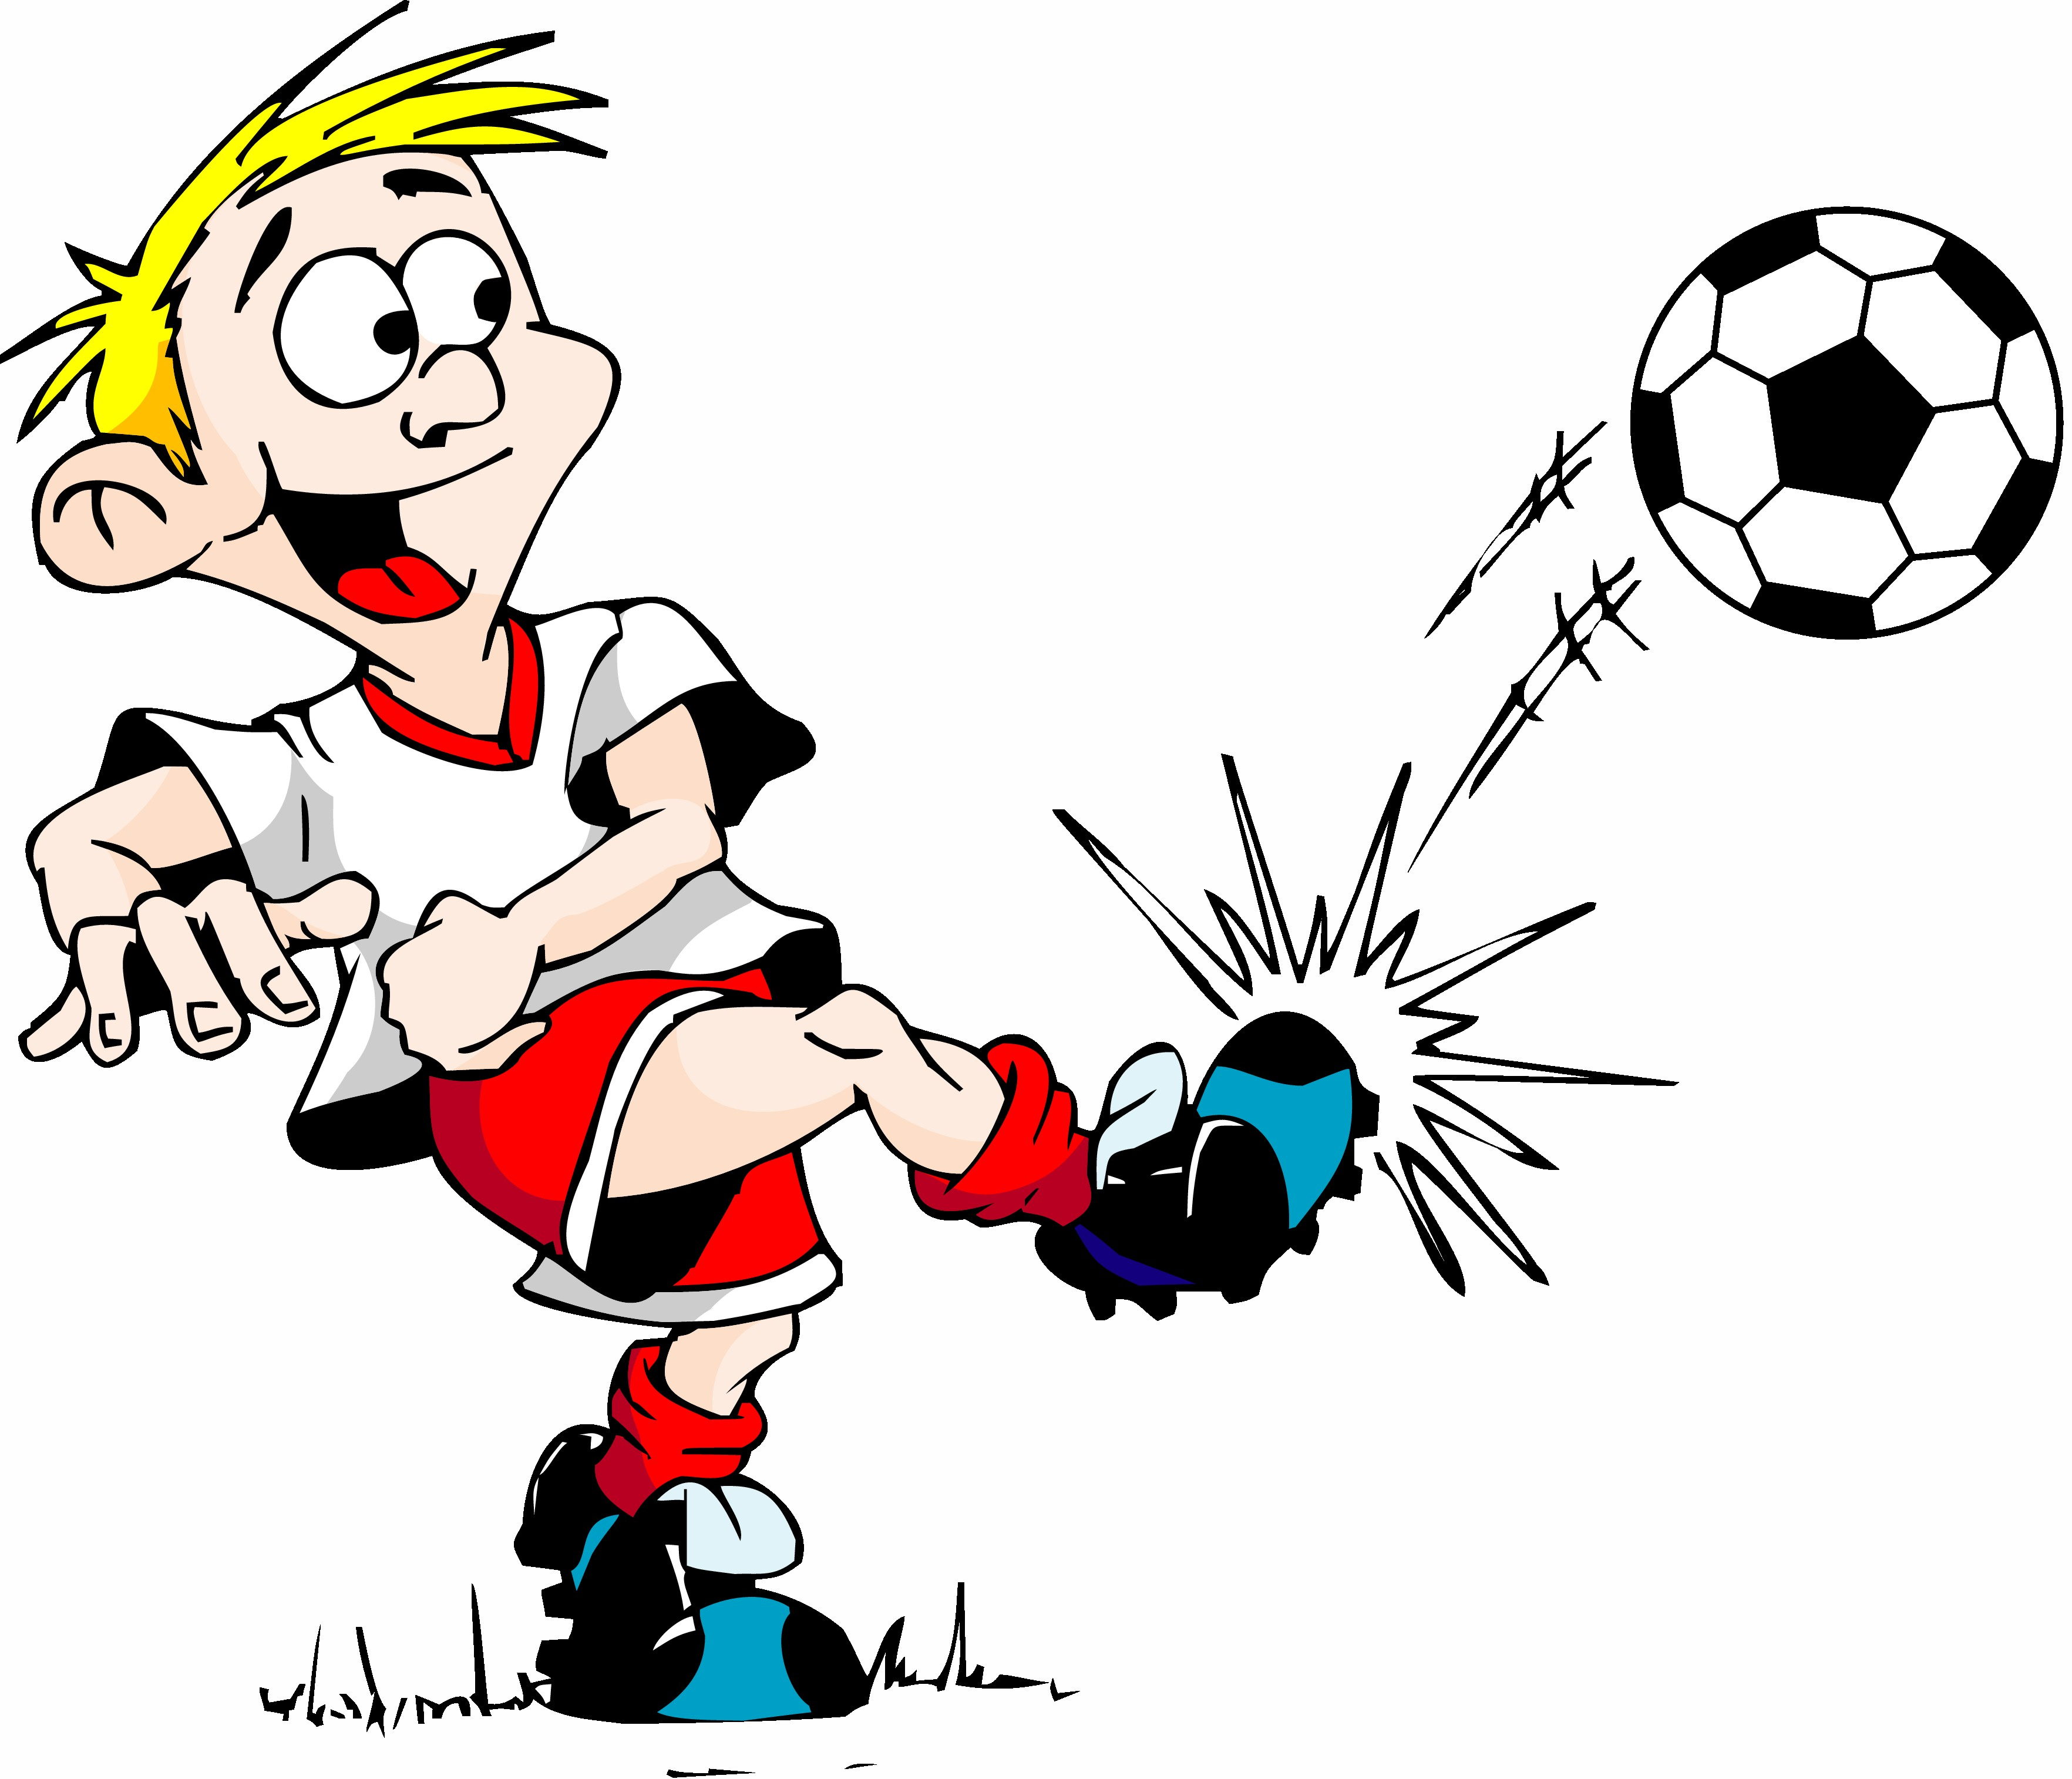 Funny Cartoon Soccer Pictures - ClipArt Best